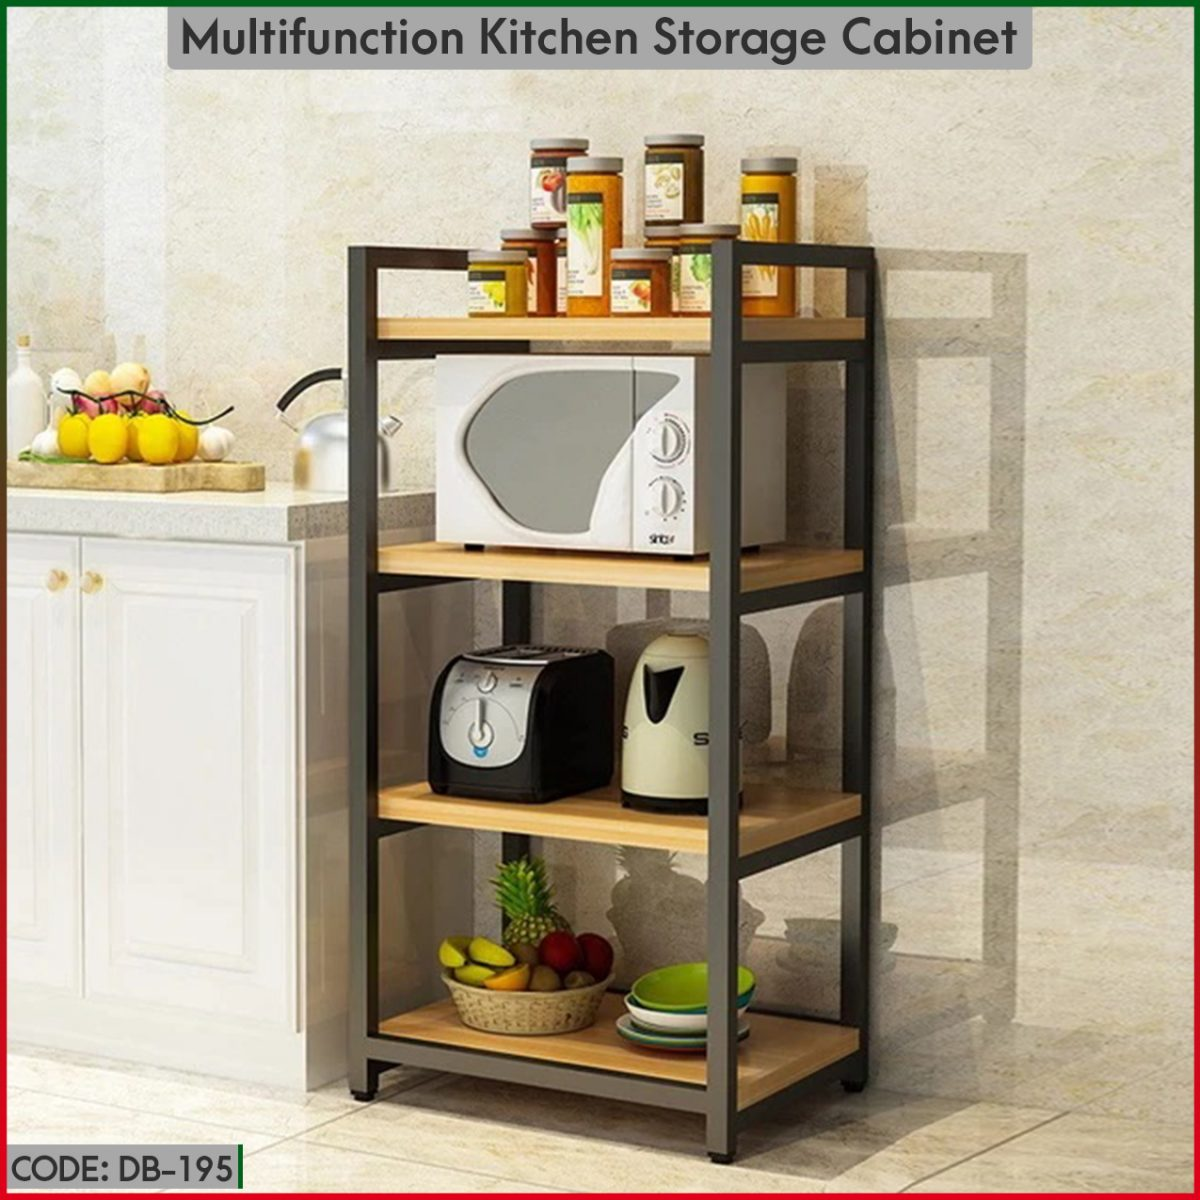 Buy premium quality Multi Storage 4 layer Cabinet at the best cheapest price in Bangladesh, Order online or visit our Facebook page digitalbazar.com